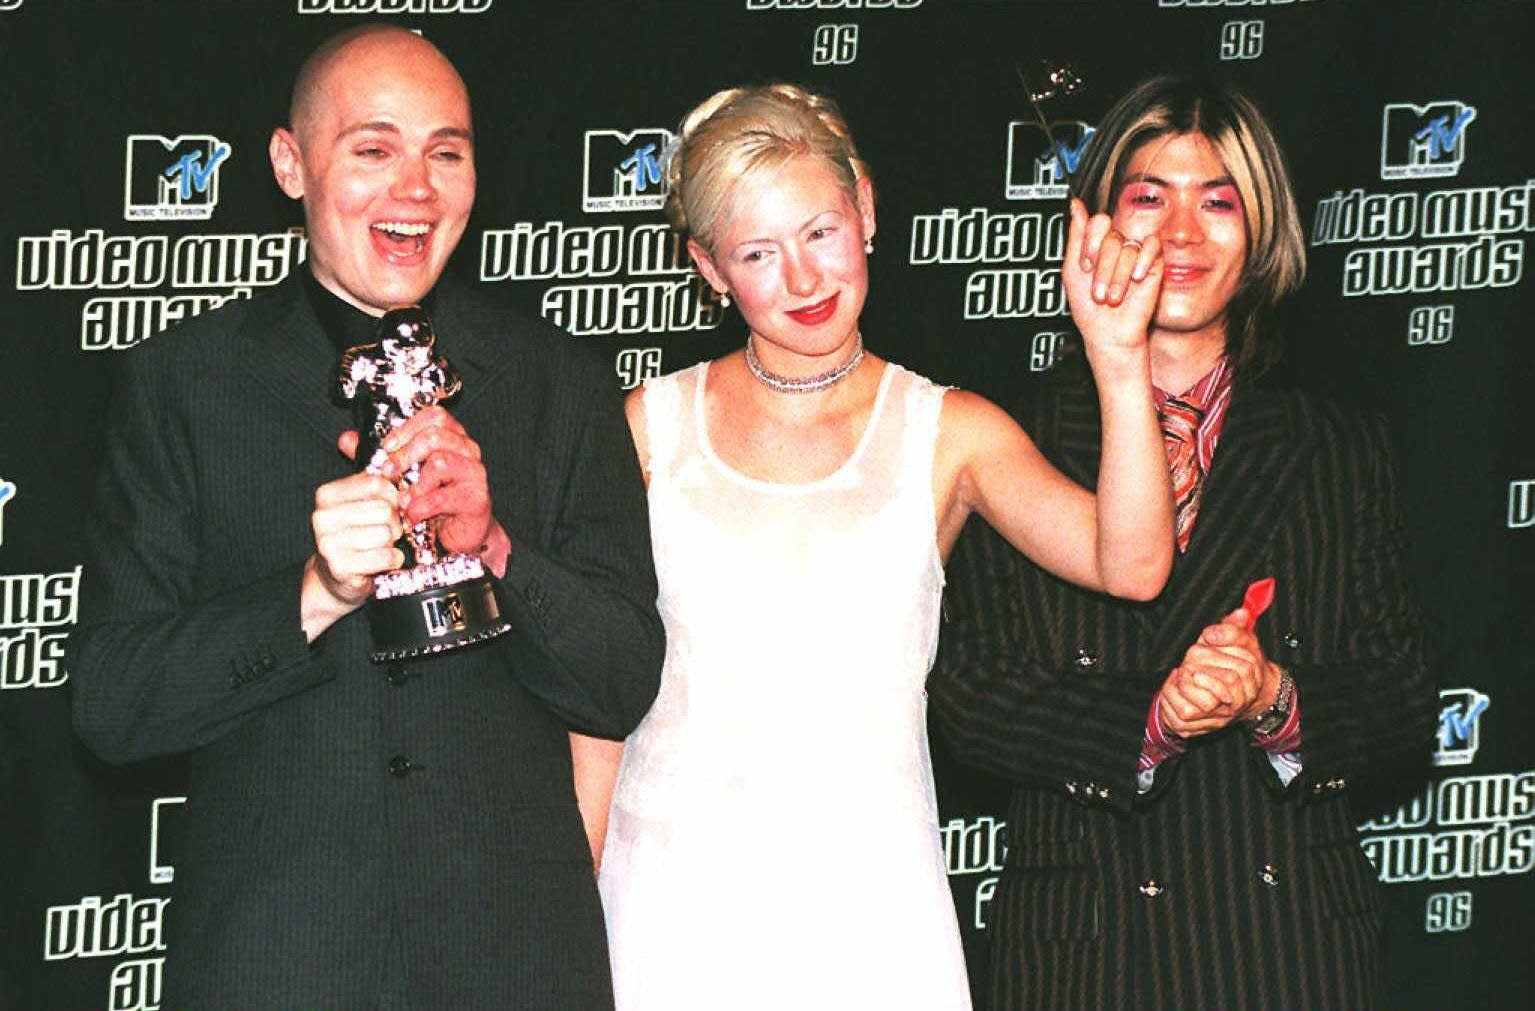 Smashing Pumpkins at the MTV Video Music Awards in 1996.